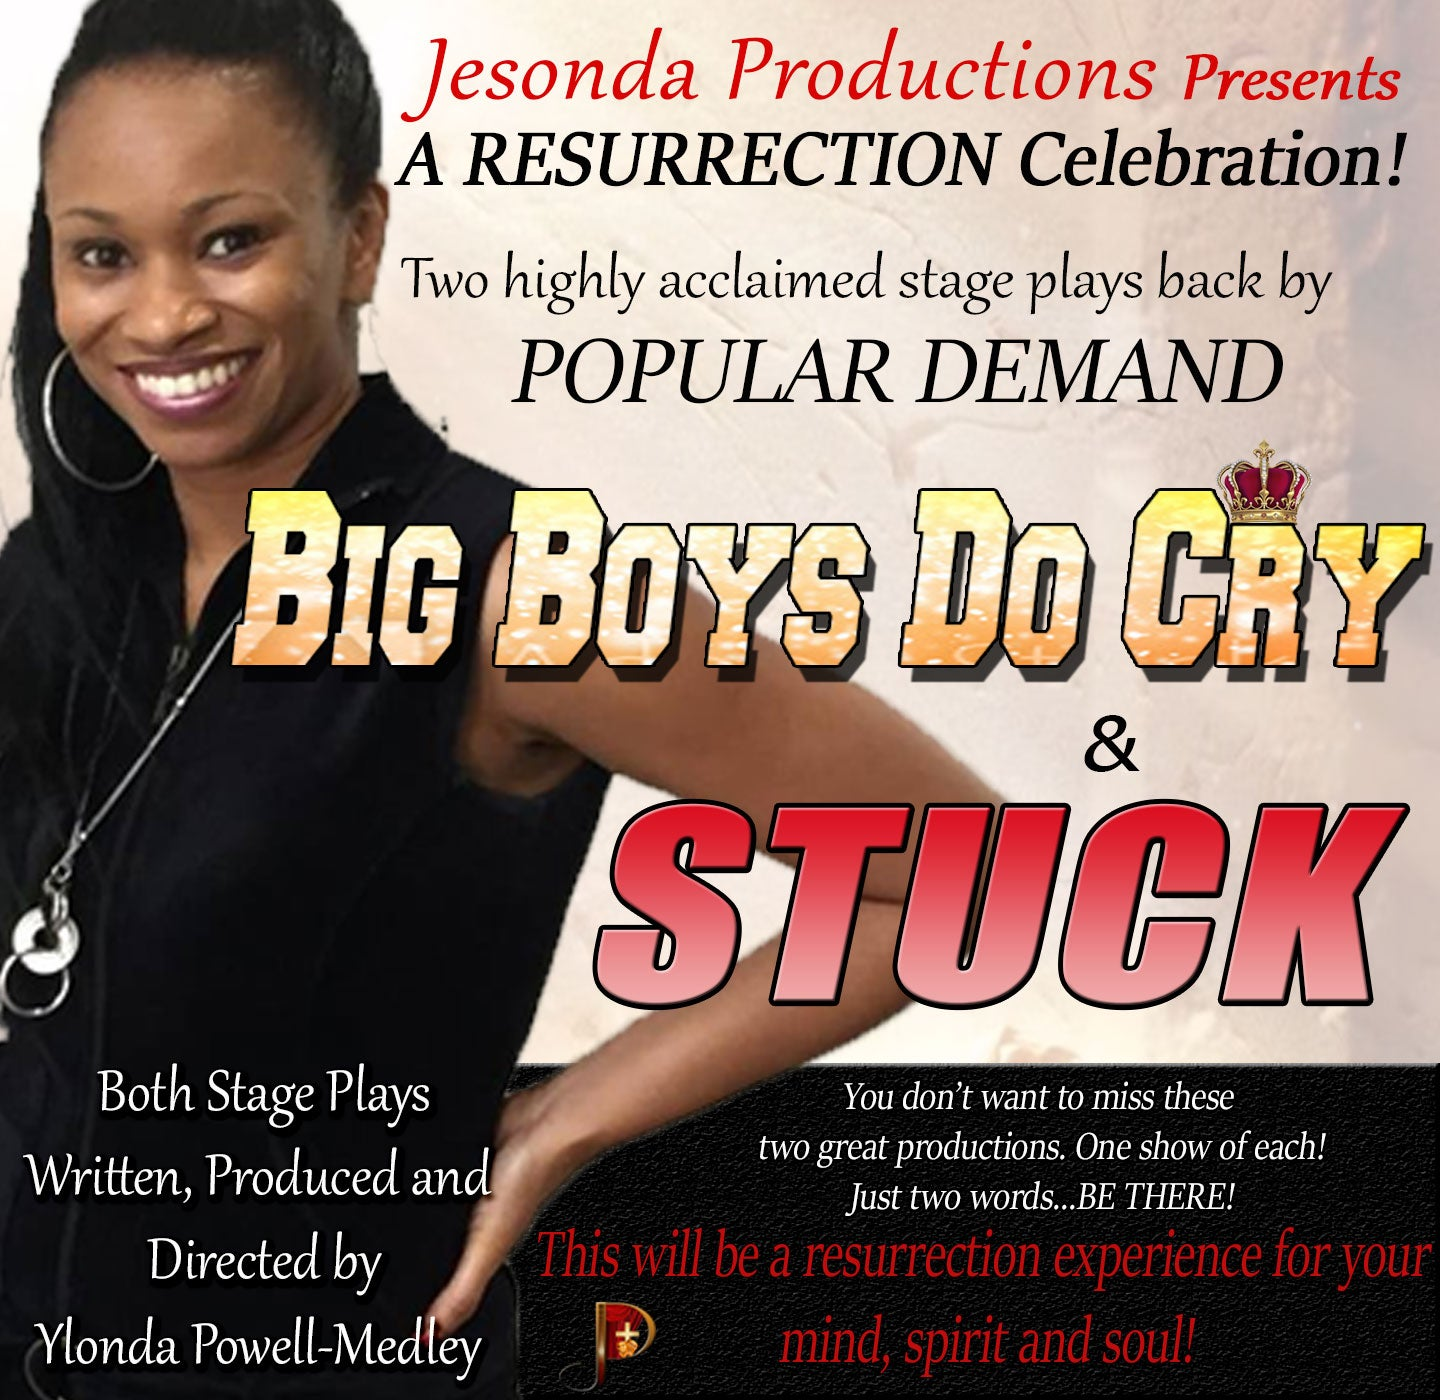 It's a Resurrection Celebration with STUCK and Big Boys Do Cry